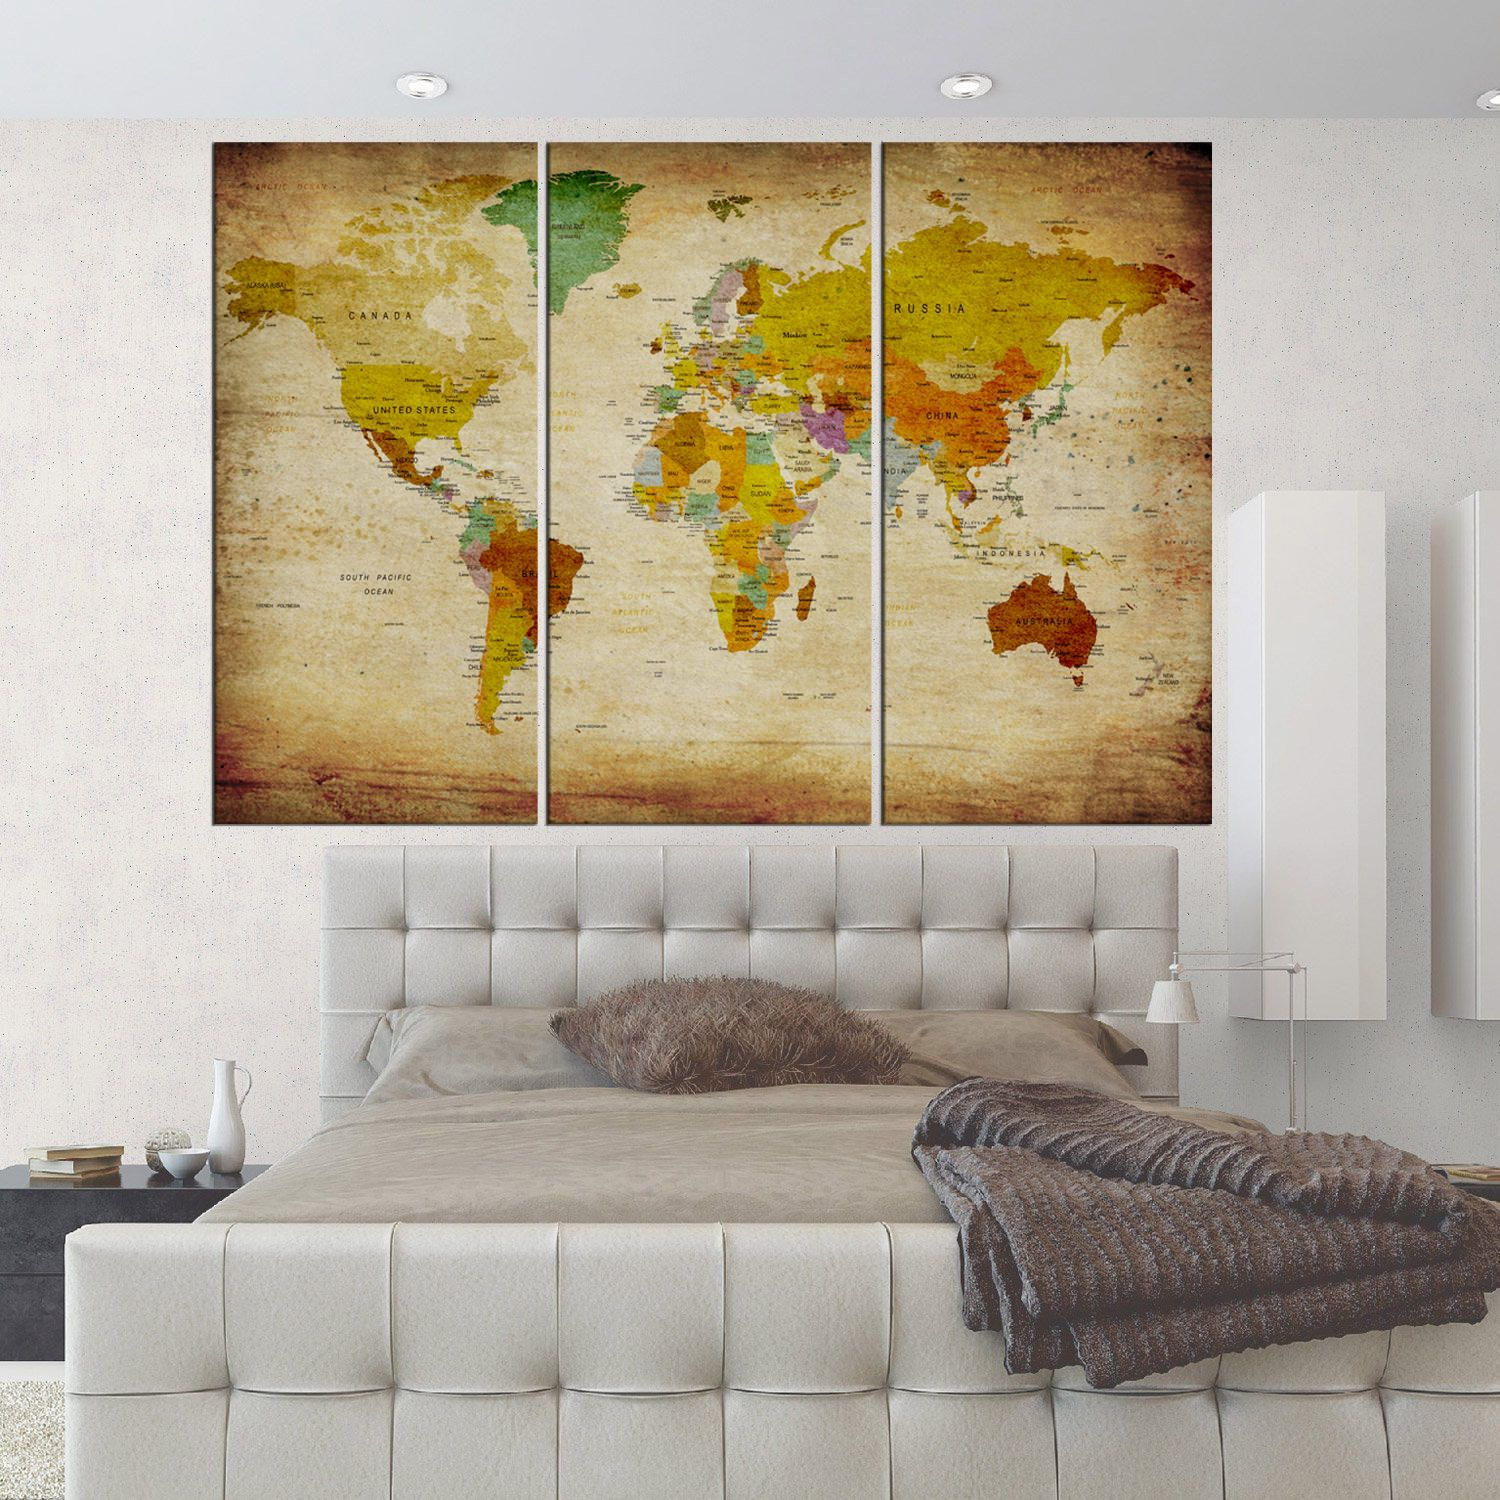 Wonderful Bedroom Framed Wall Art Ideas - The Wall Art Decorations ...